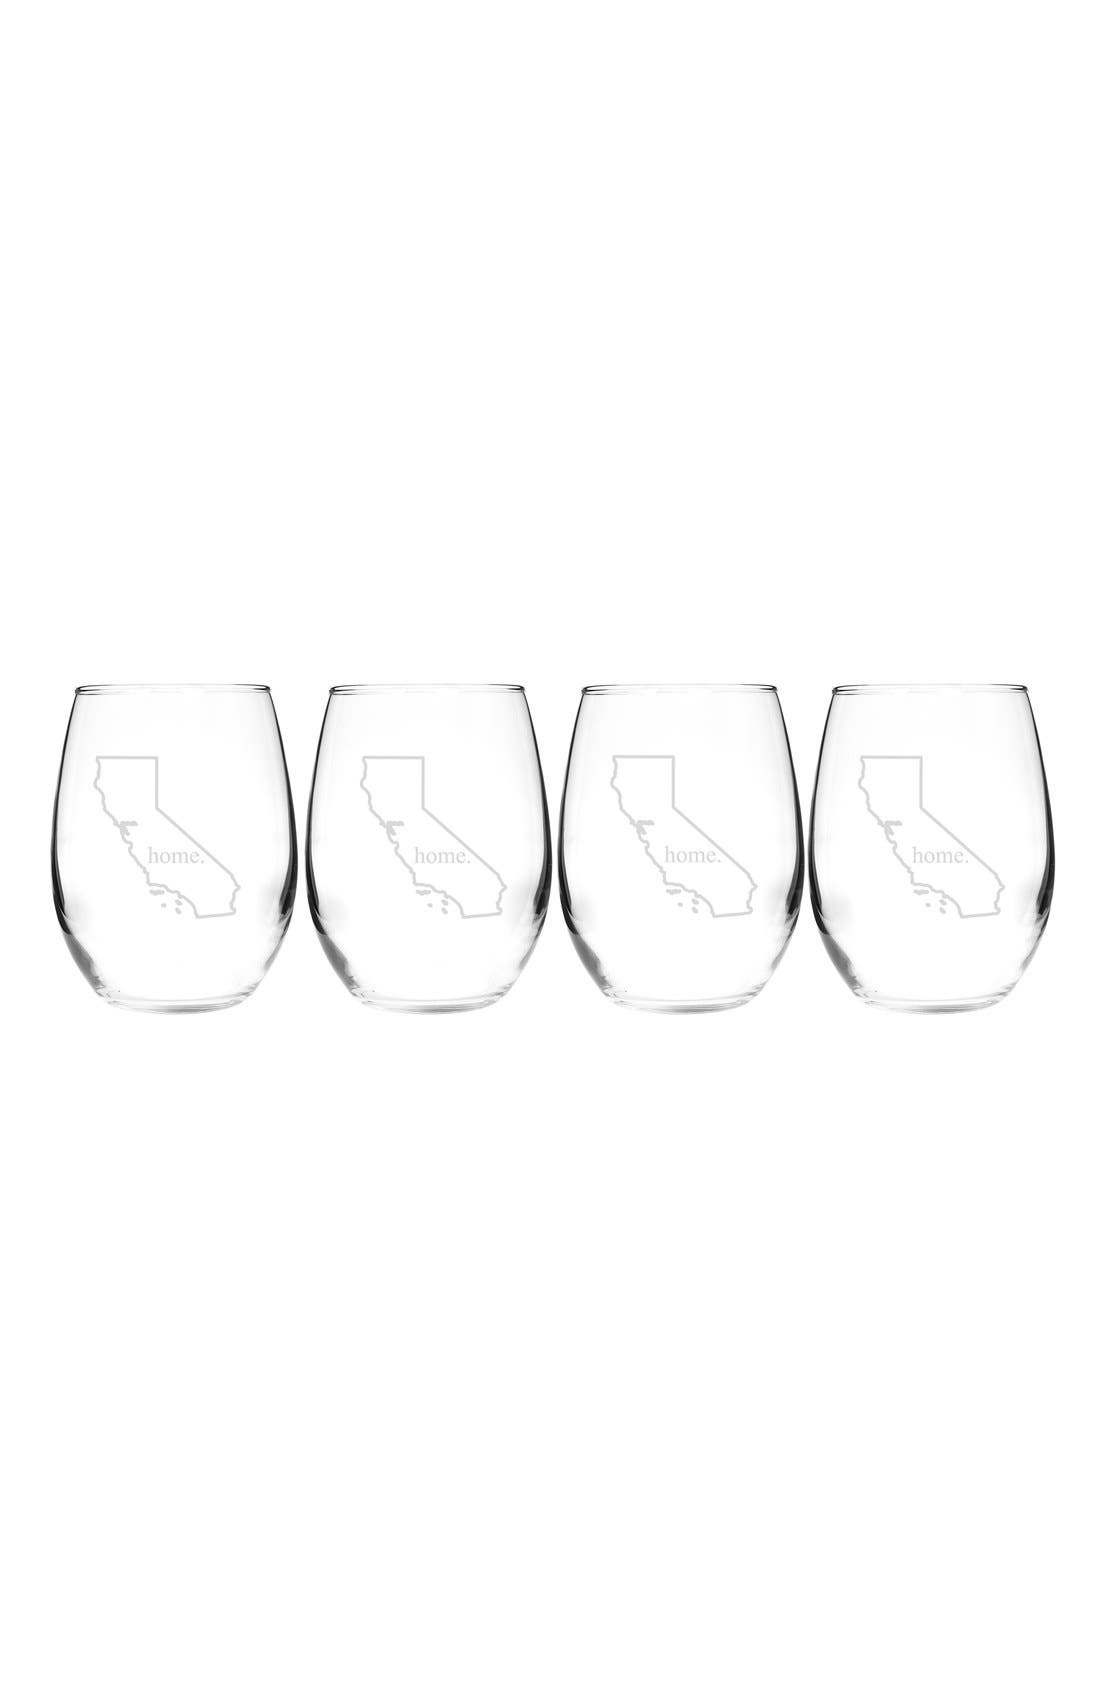 Home State Set of 4 Stemless Wine Glasses,                             Alternate thumbnail 51, color,